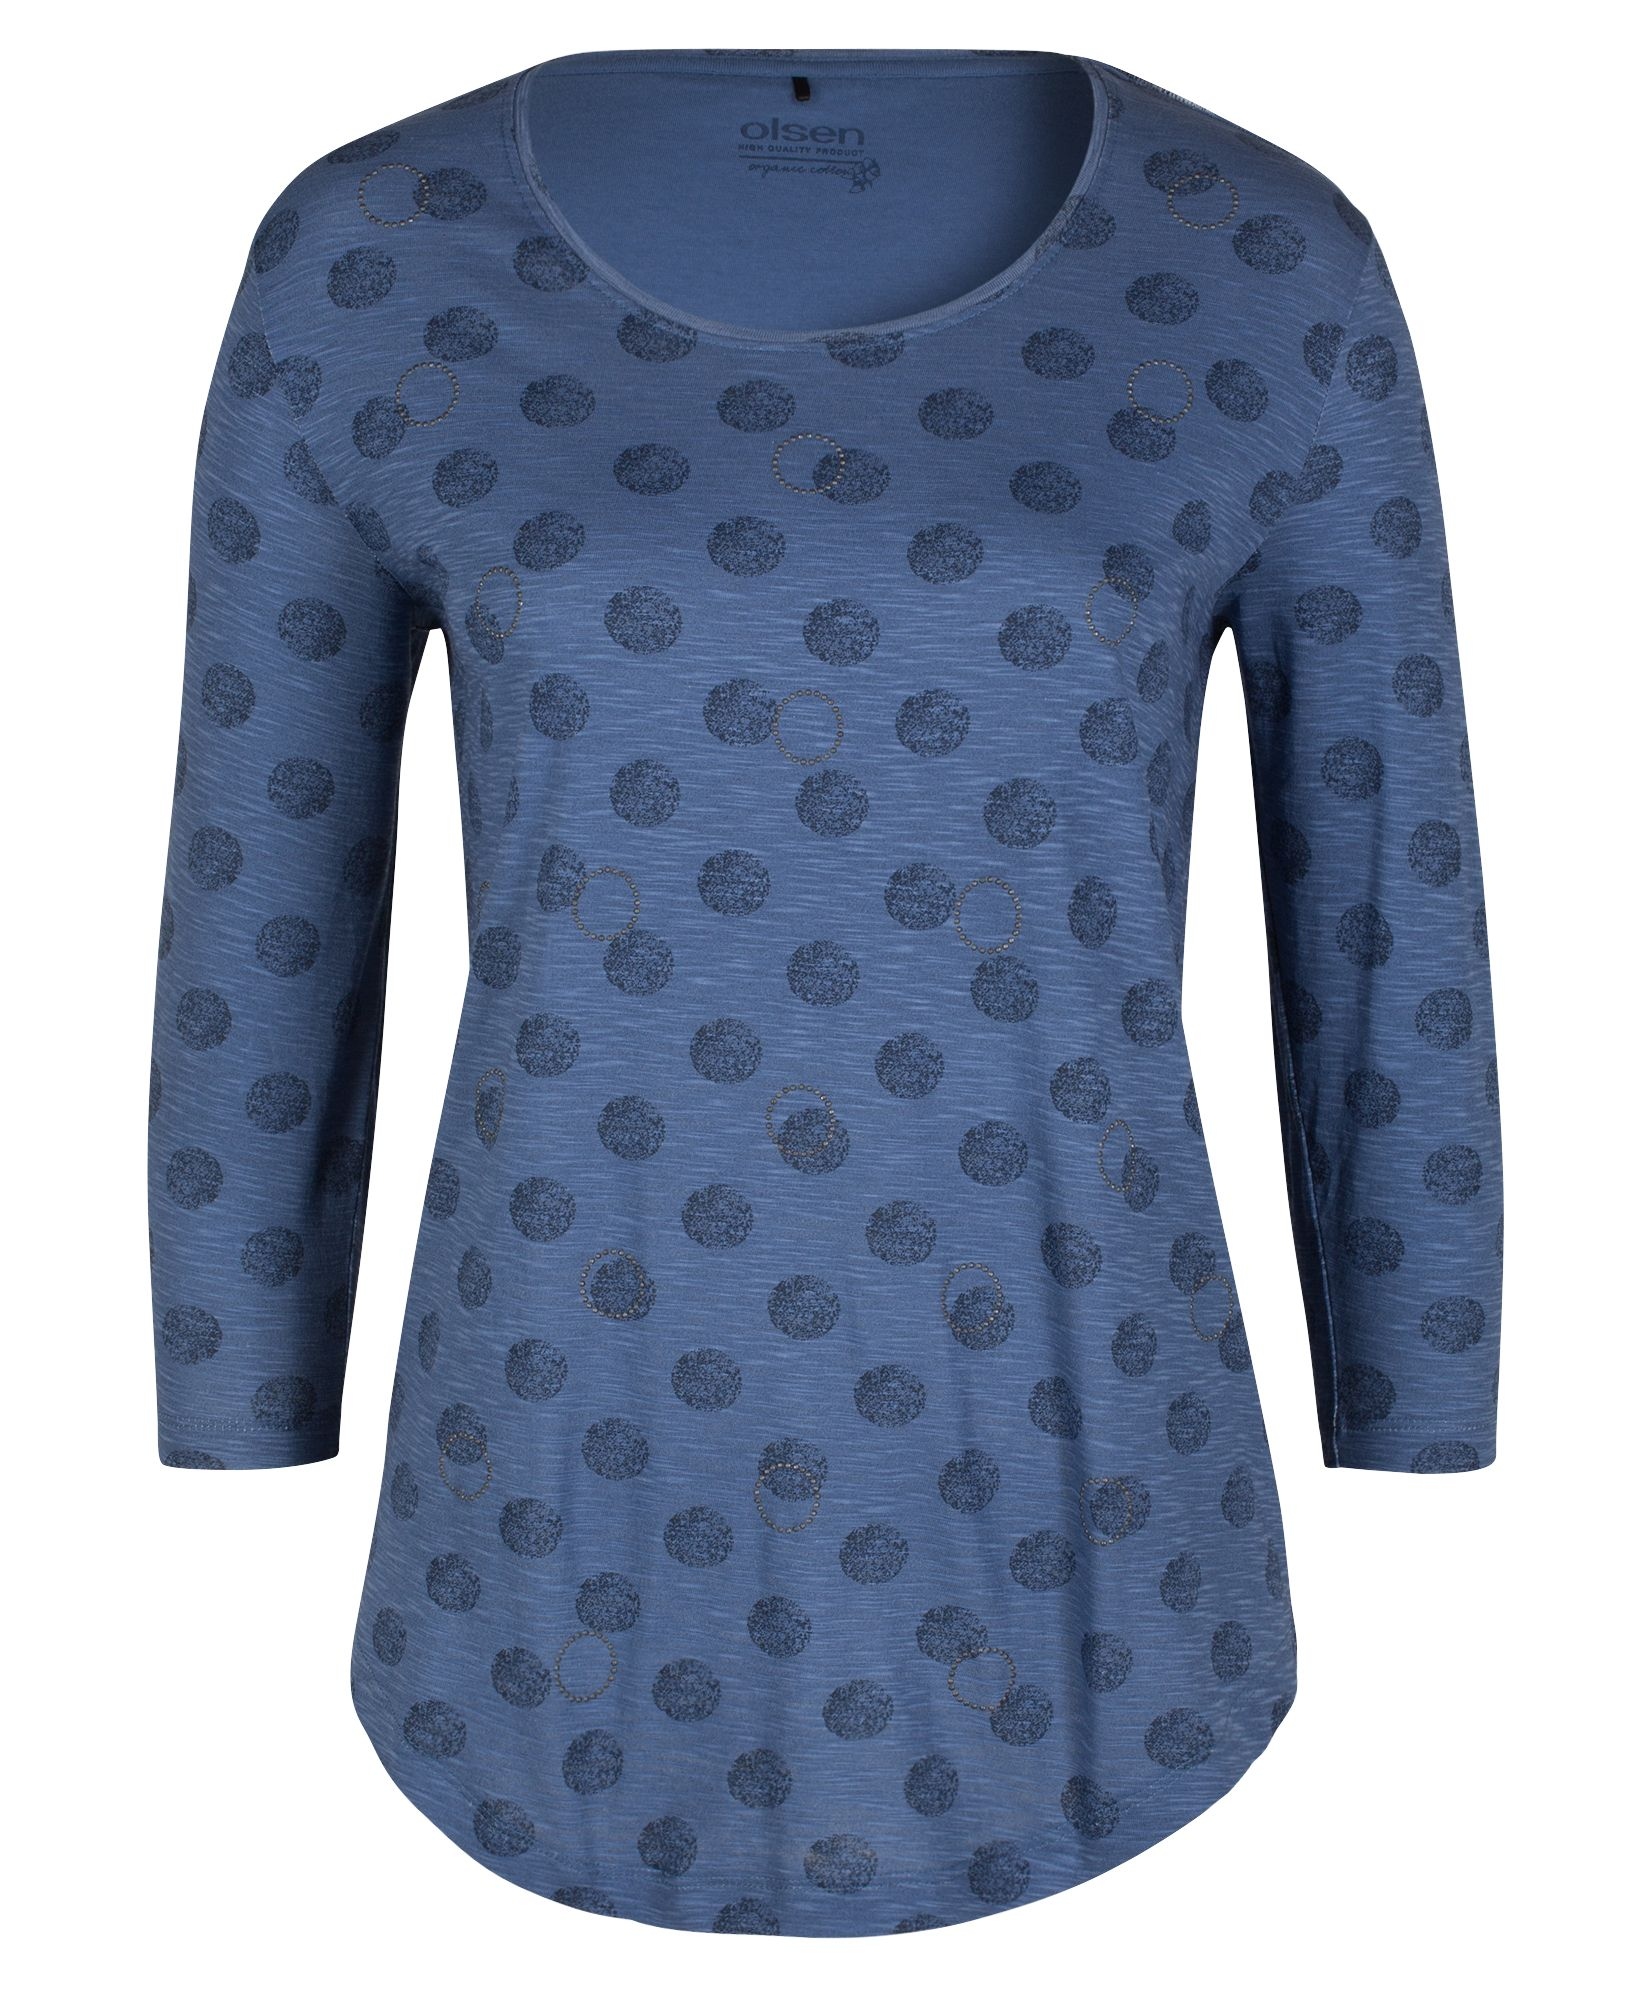 Olsen T-Shirt Circle Allover Print, Denim